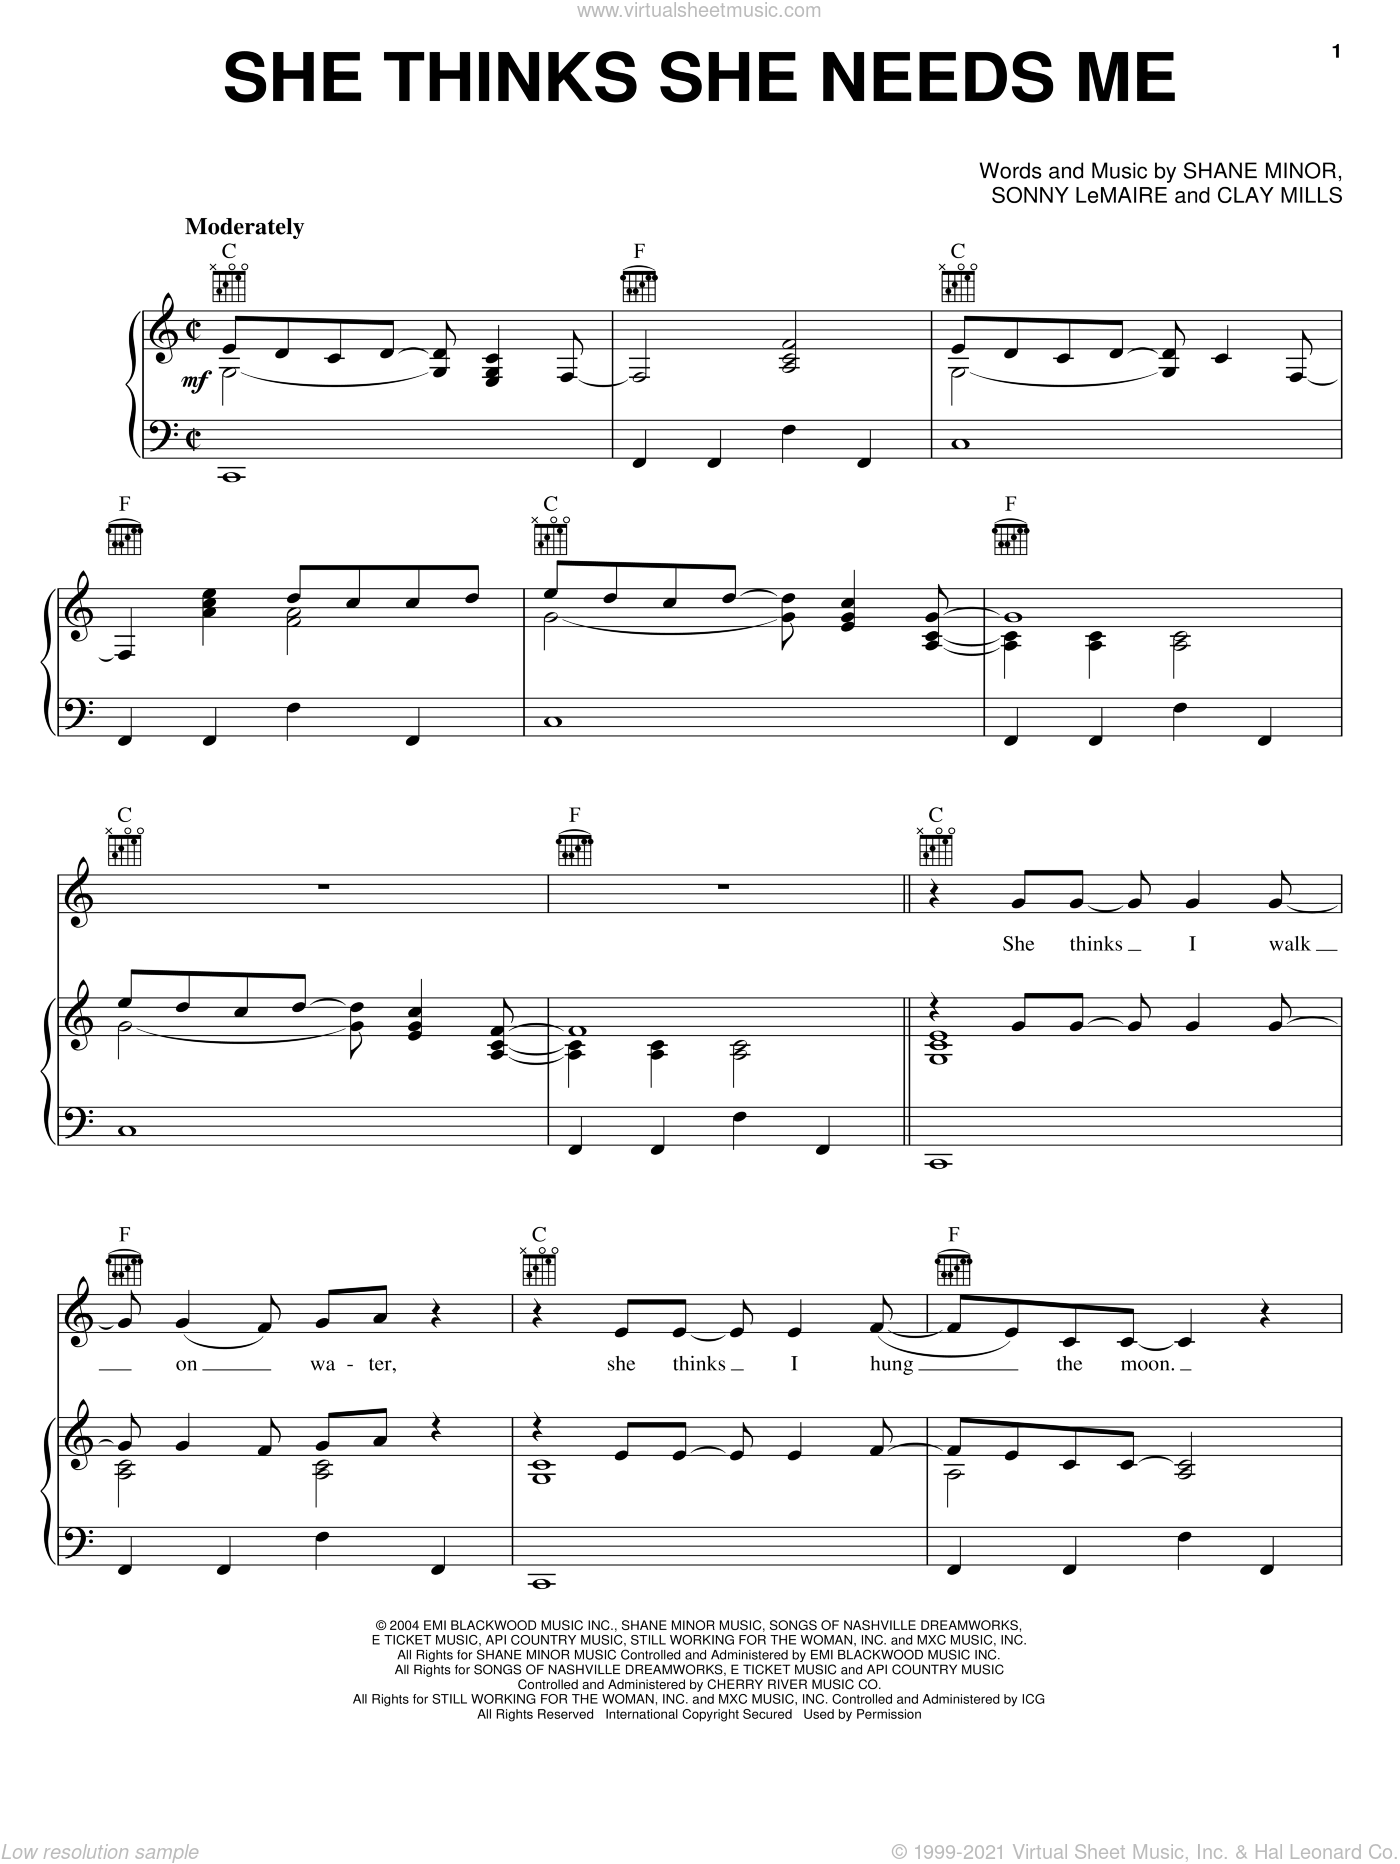 She Thinks She Needs Me sheet music for voice, piano or guitar by Andy Griggs, Clay Mills, Shane Minor and Sonny LeMaire, intermediate skill level